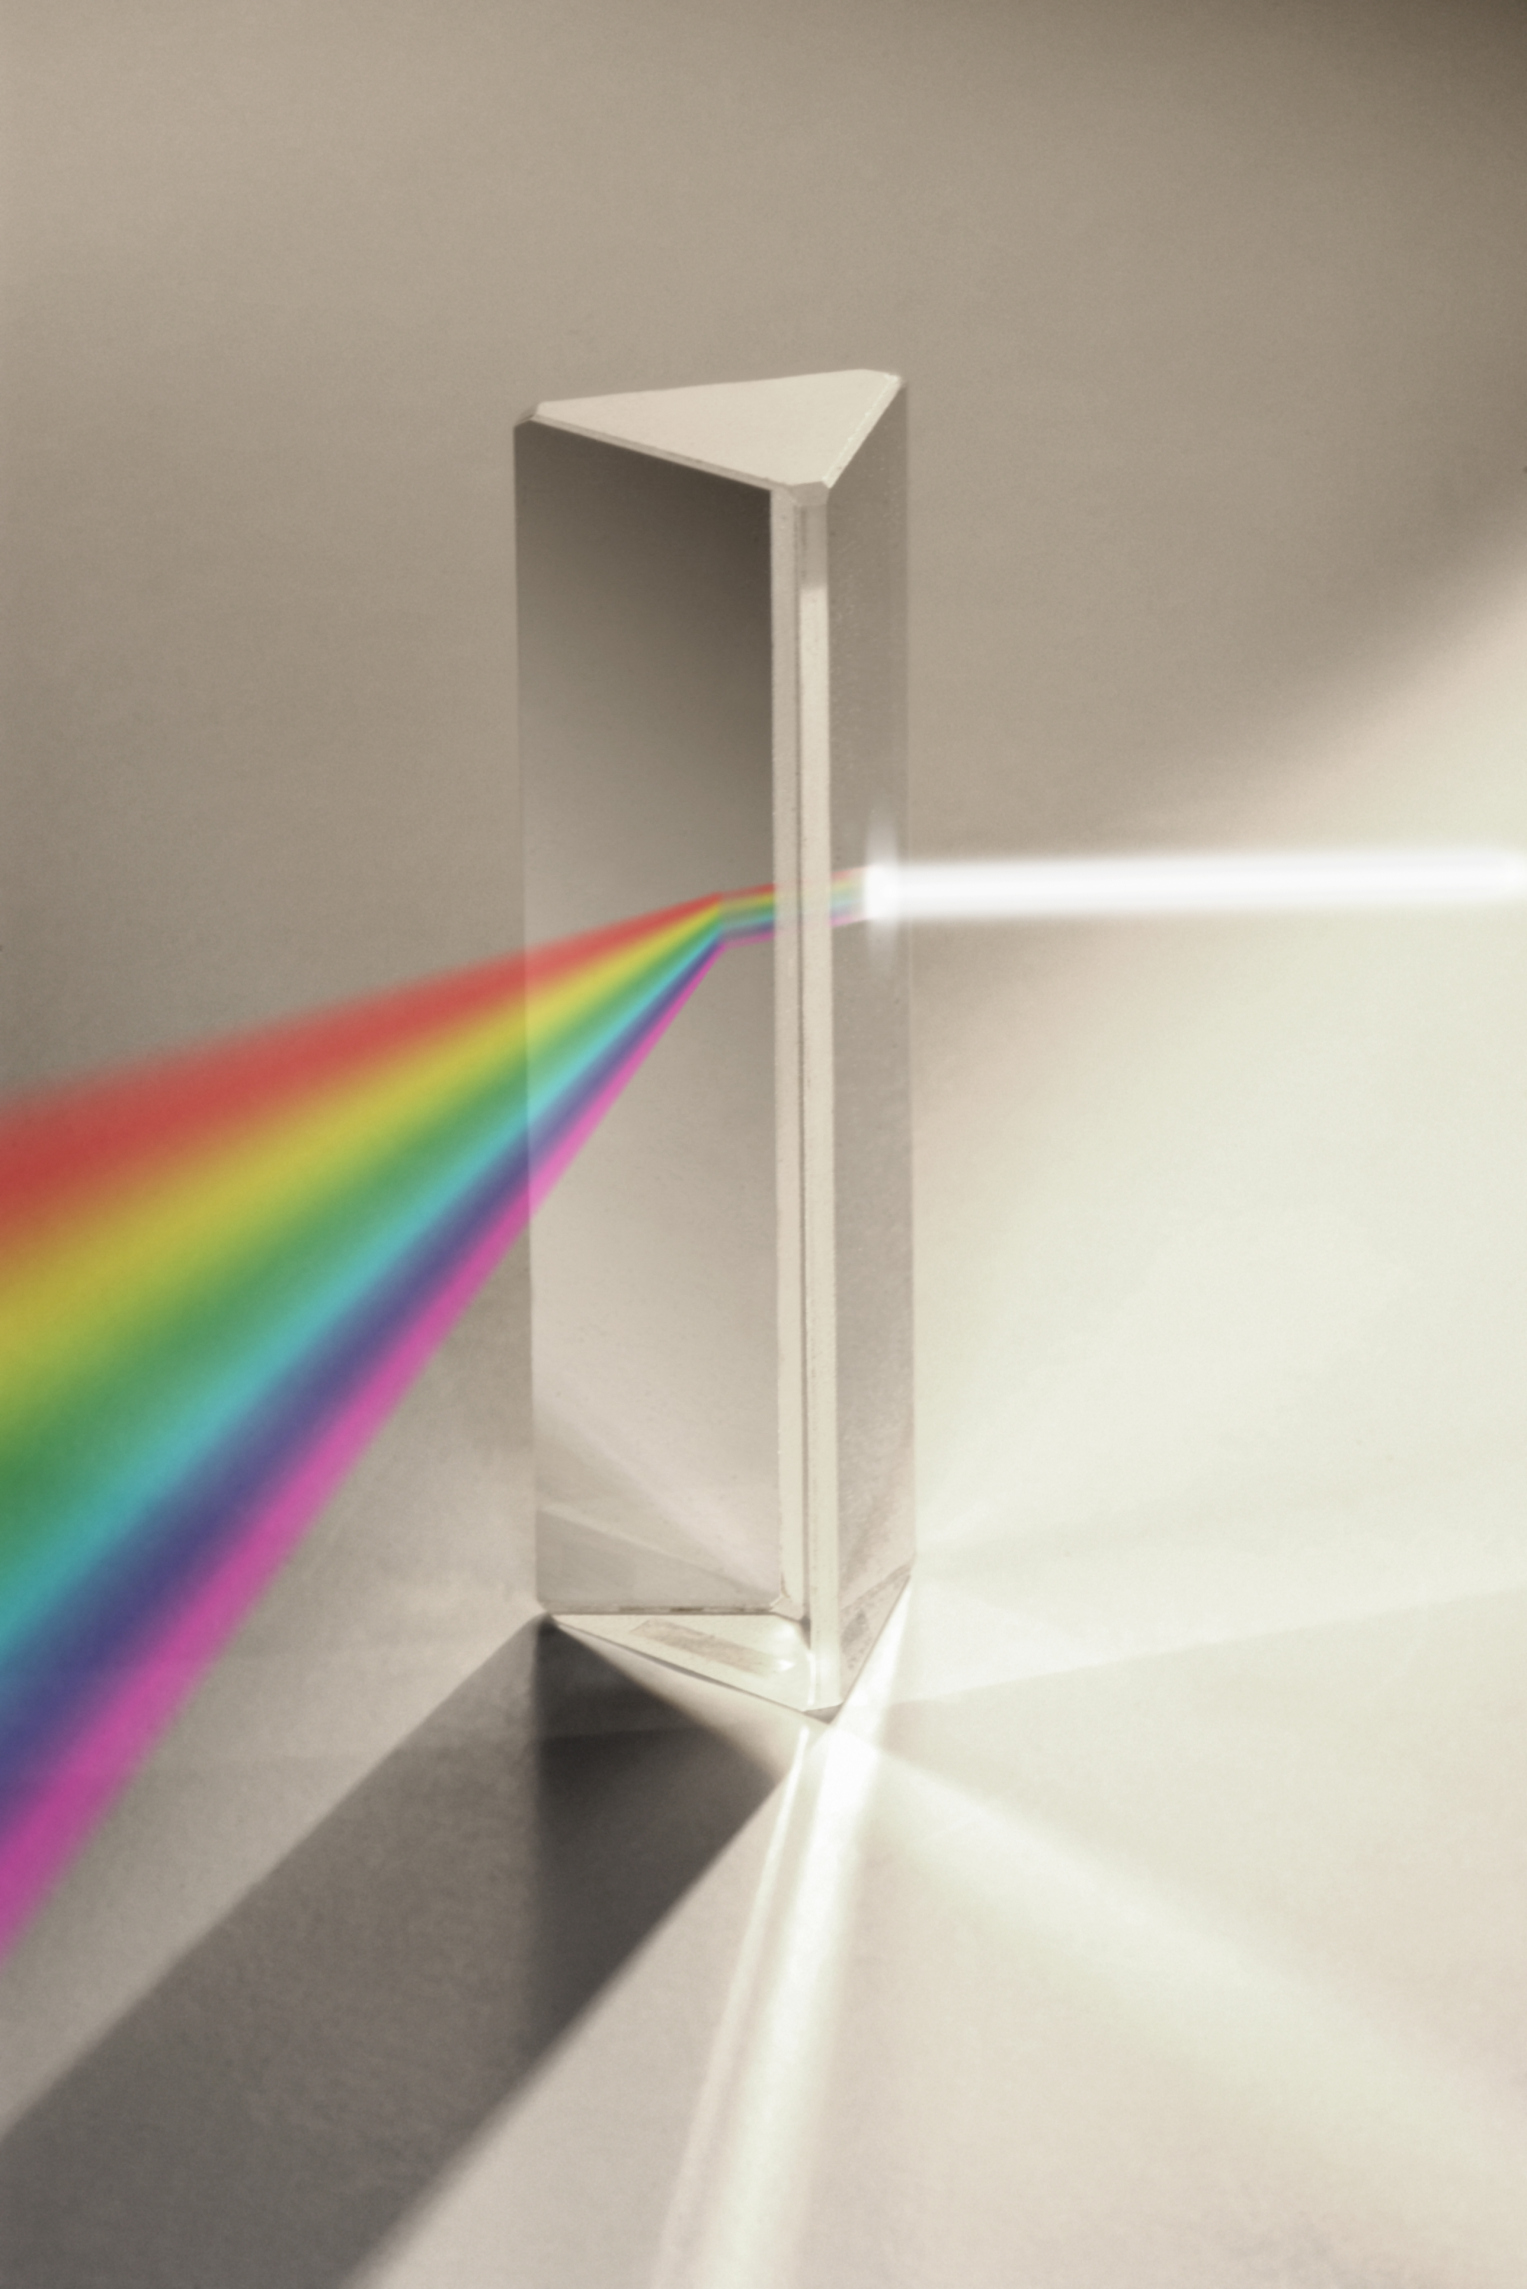 How To Make A Rainbow Sparkle Prism At Home